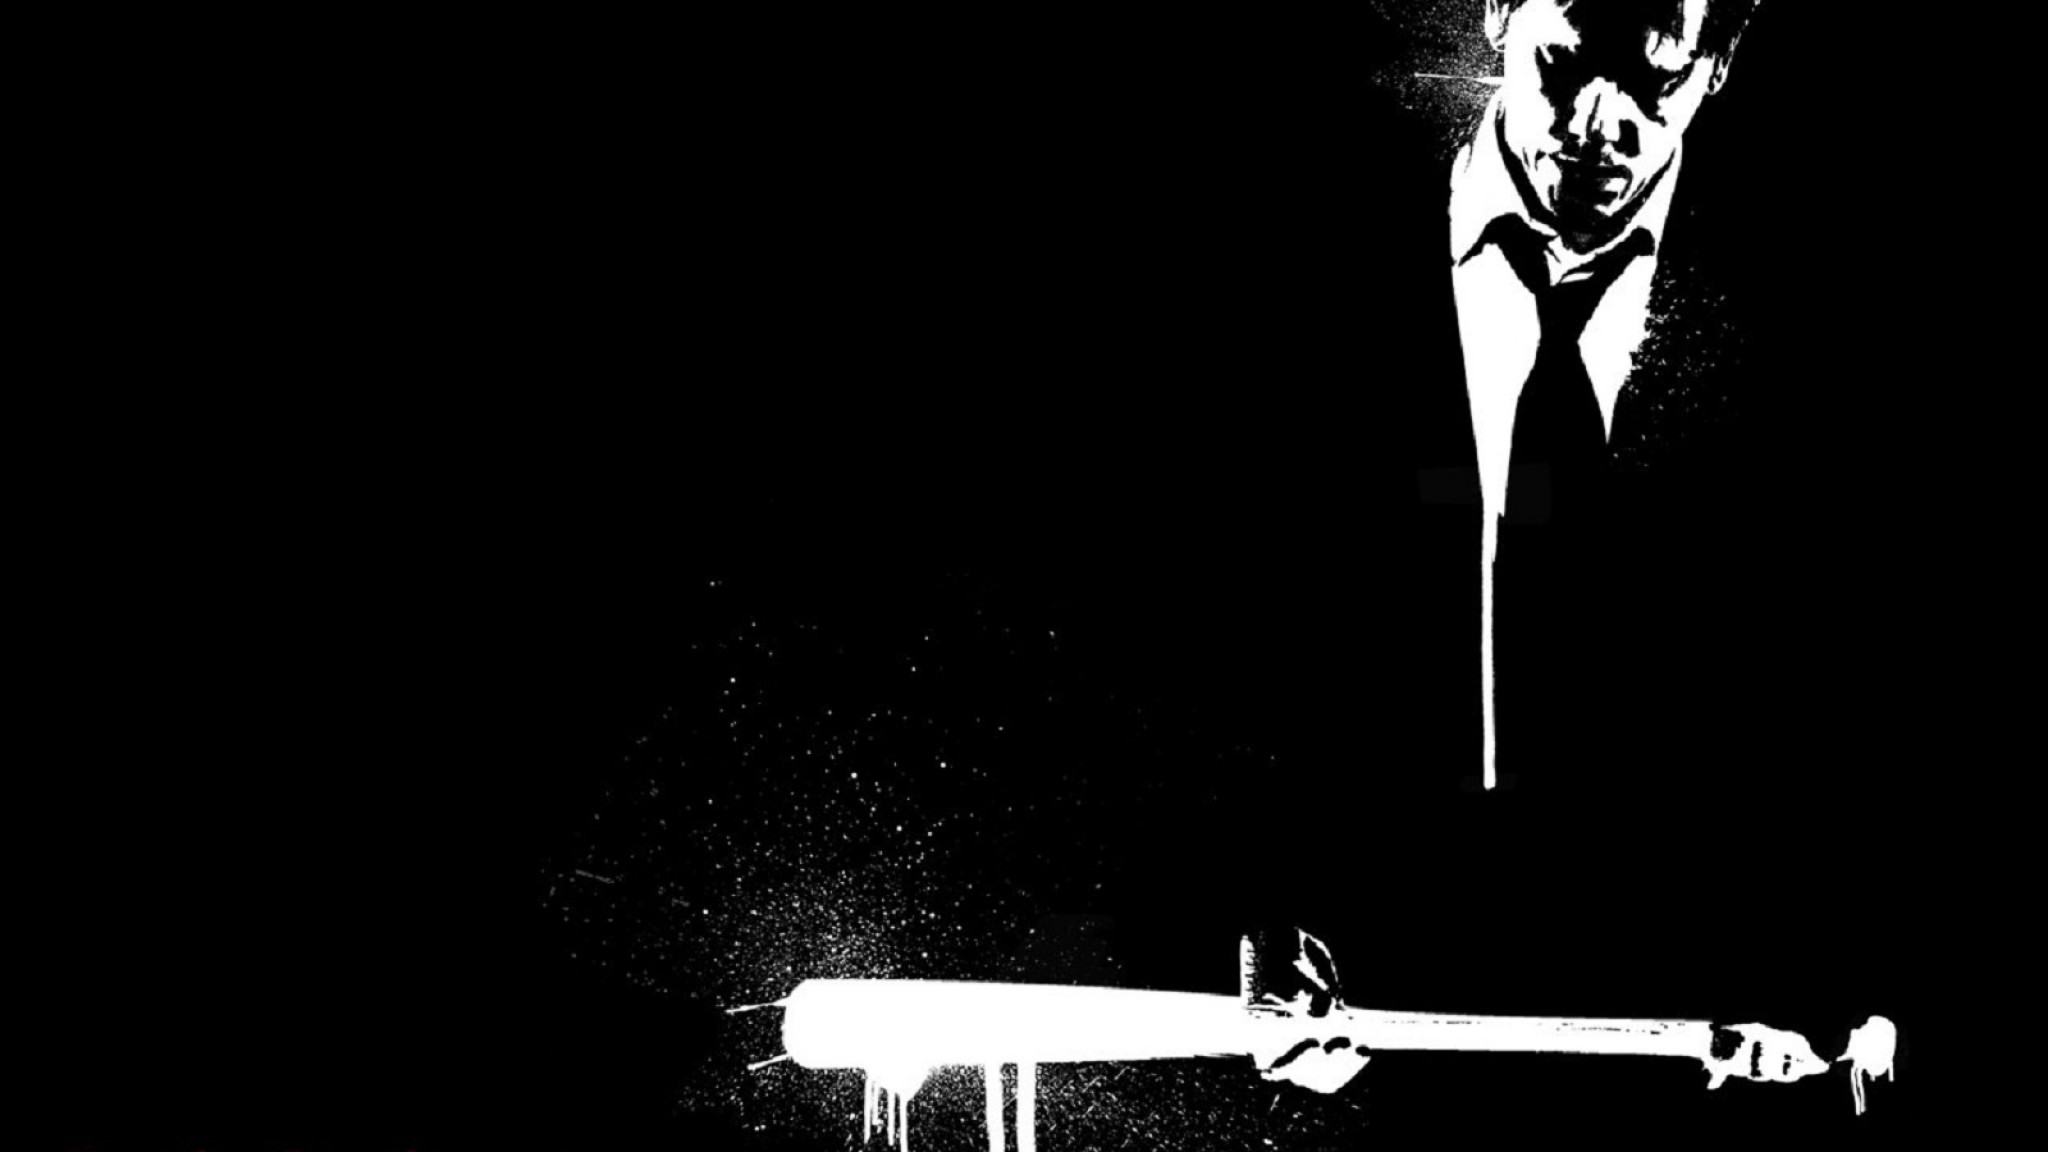 Death sentence  bw  black white  man  baseball bat  revenge   HD HD Wallpaper